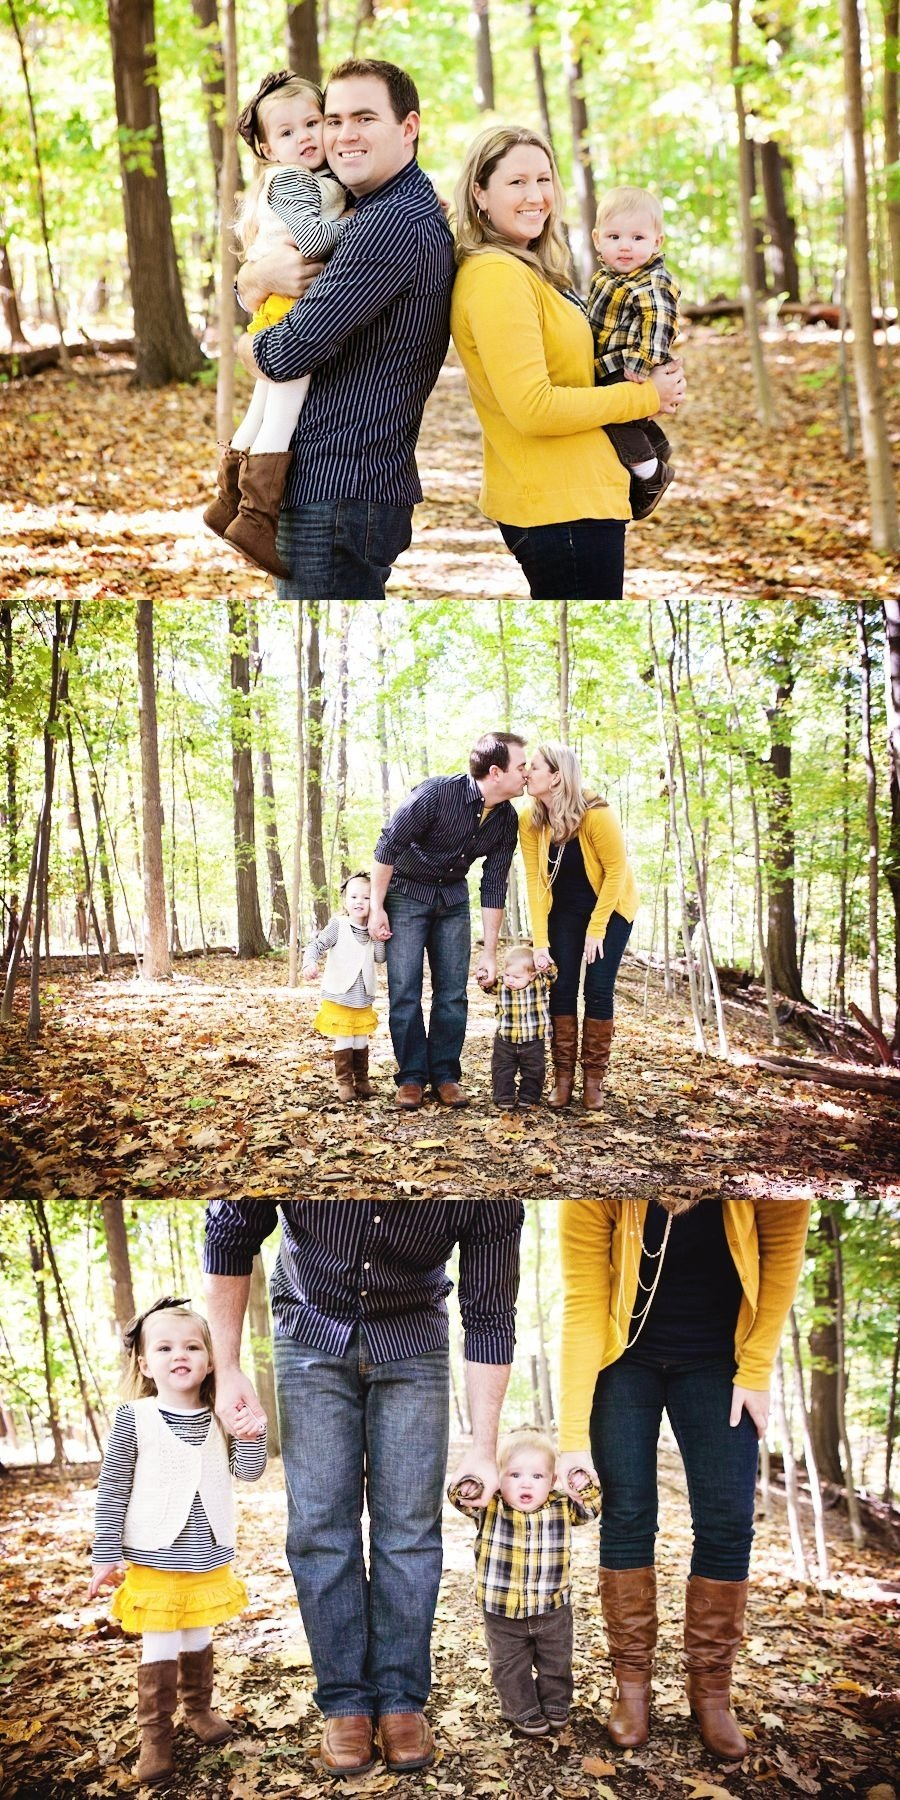 10 Perfect Ideas For Family Pictures Outfits awesome example of great outfit coordination not matching for 5 2020